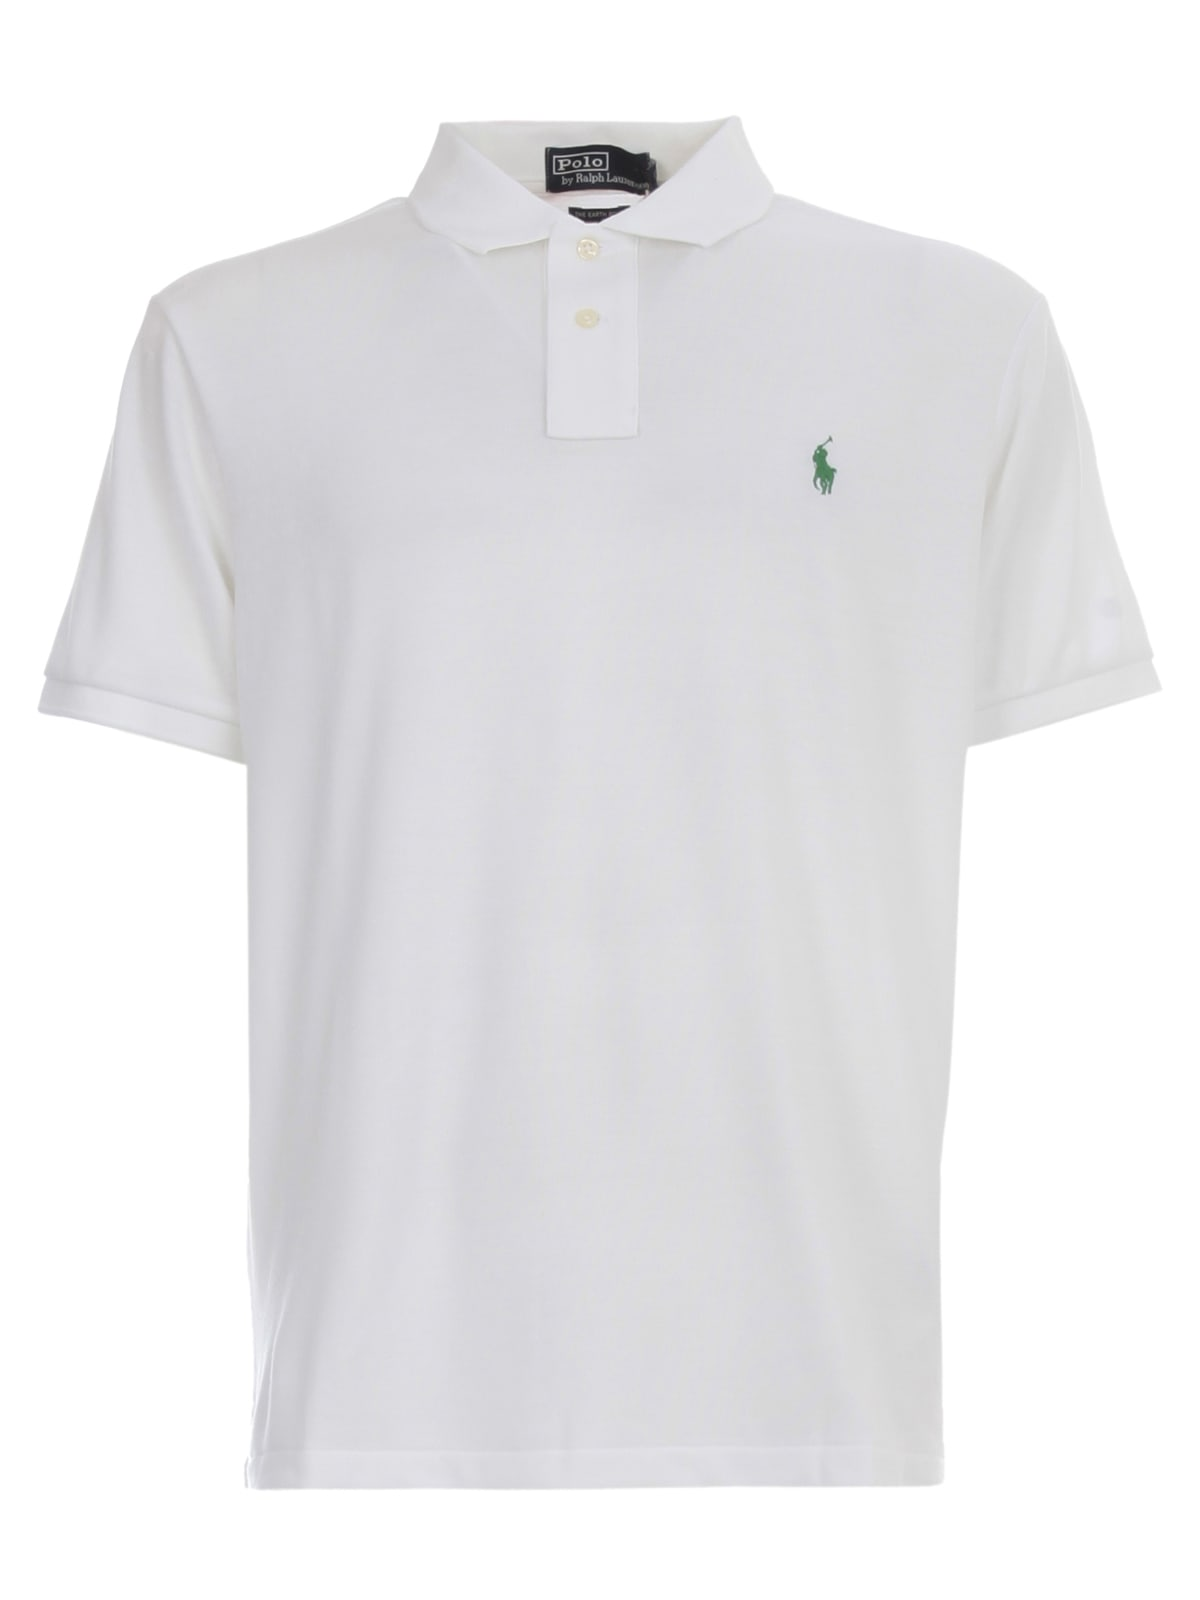 Polo Ralph Lauren Polo Earth S/s Recycled Mesh